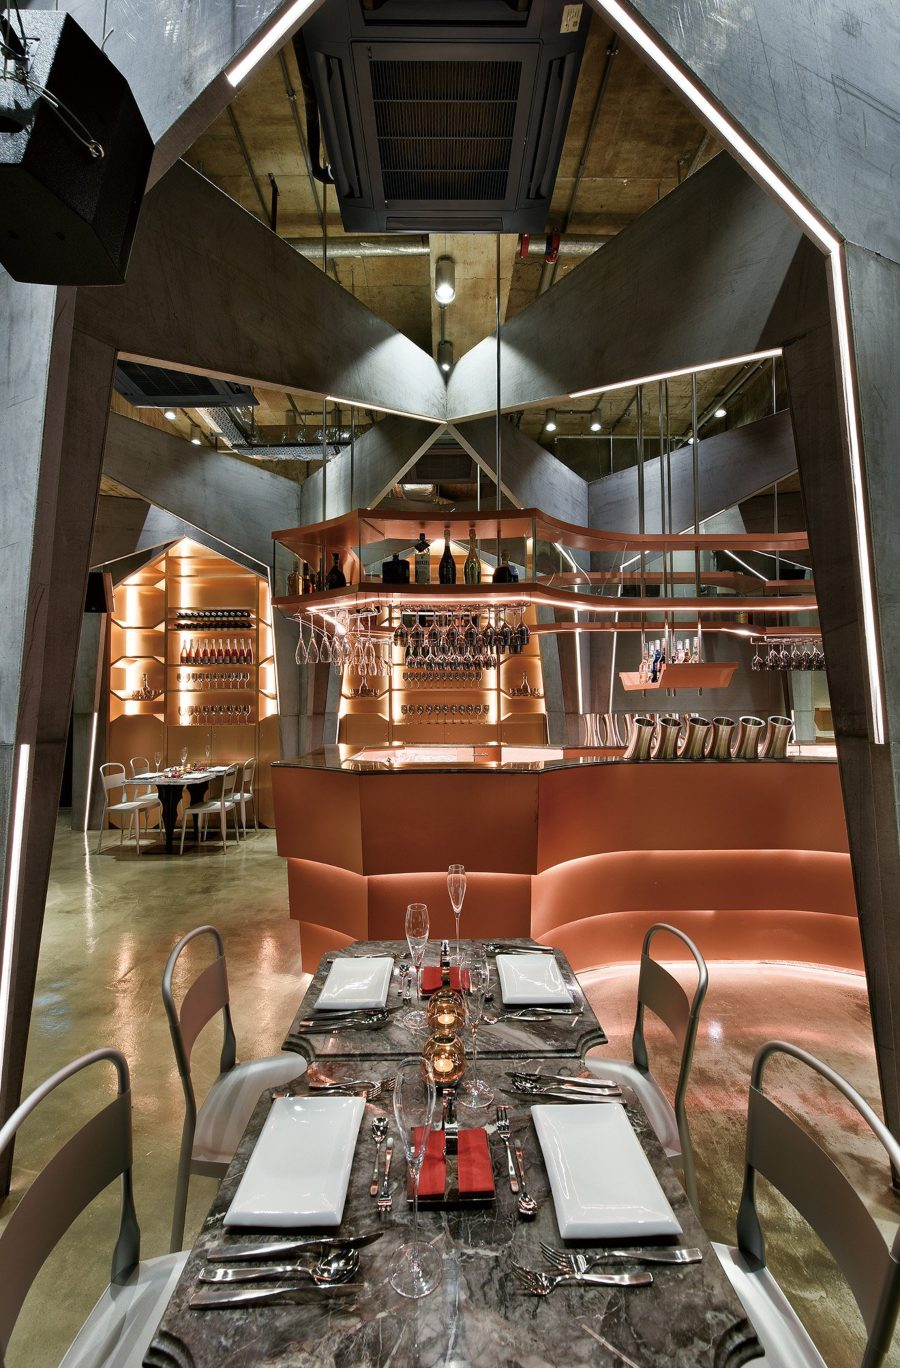 Futuristic Restaurant Design: Castello 4 by Michael Liu